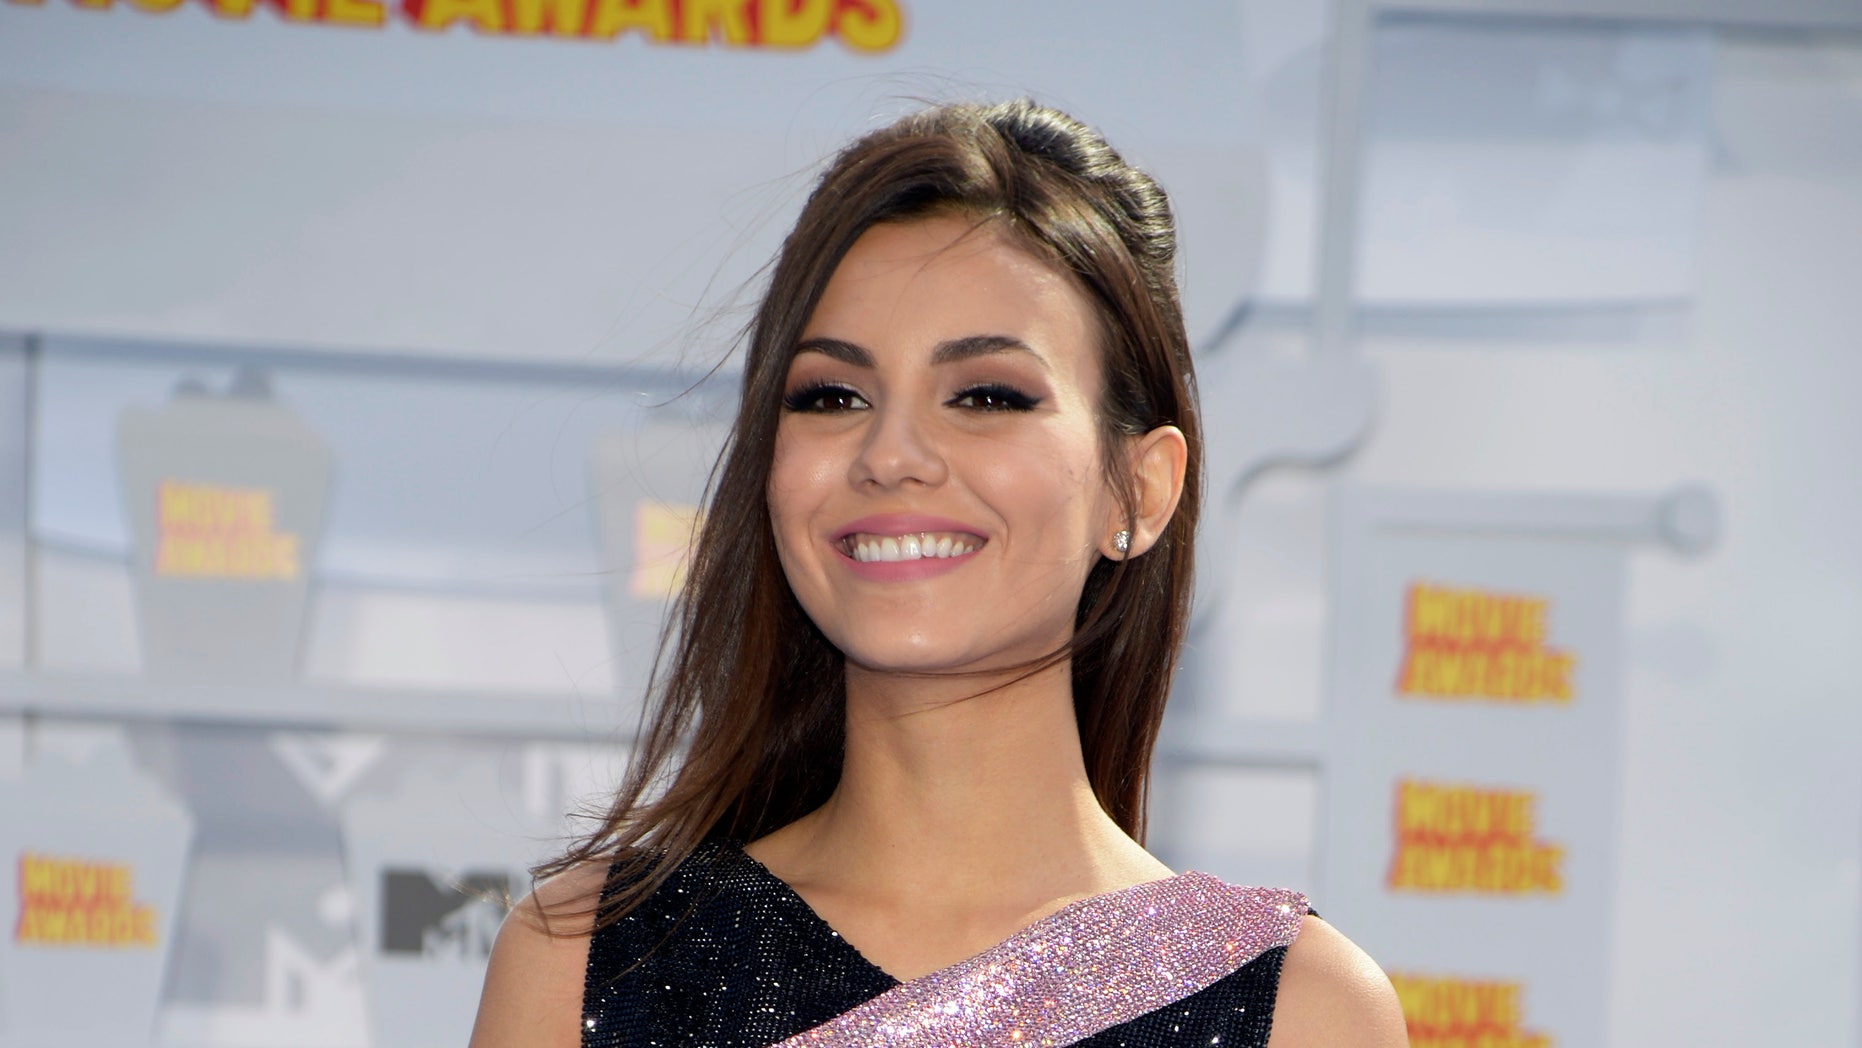 Actress Victoria Justice arrives at the 2015 MTV Movie Awards in Los Angeles, California April 12, 2015. REUTERS/Phil McCarten - RTR4X1OY